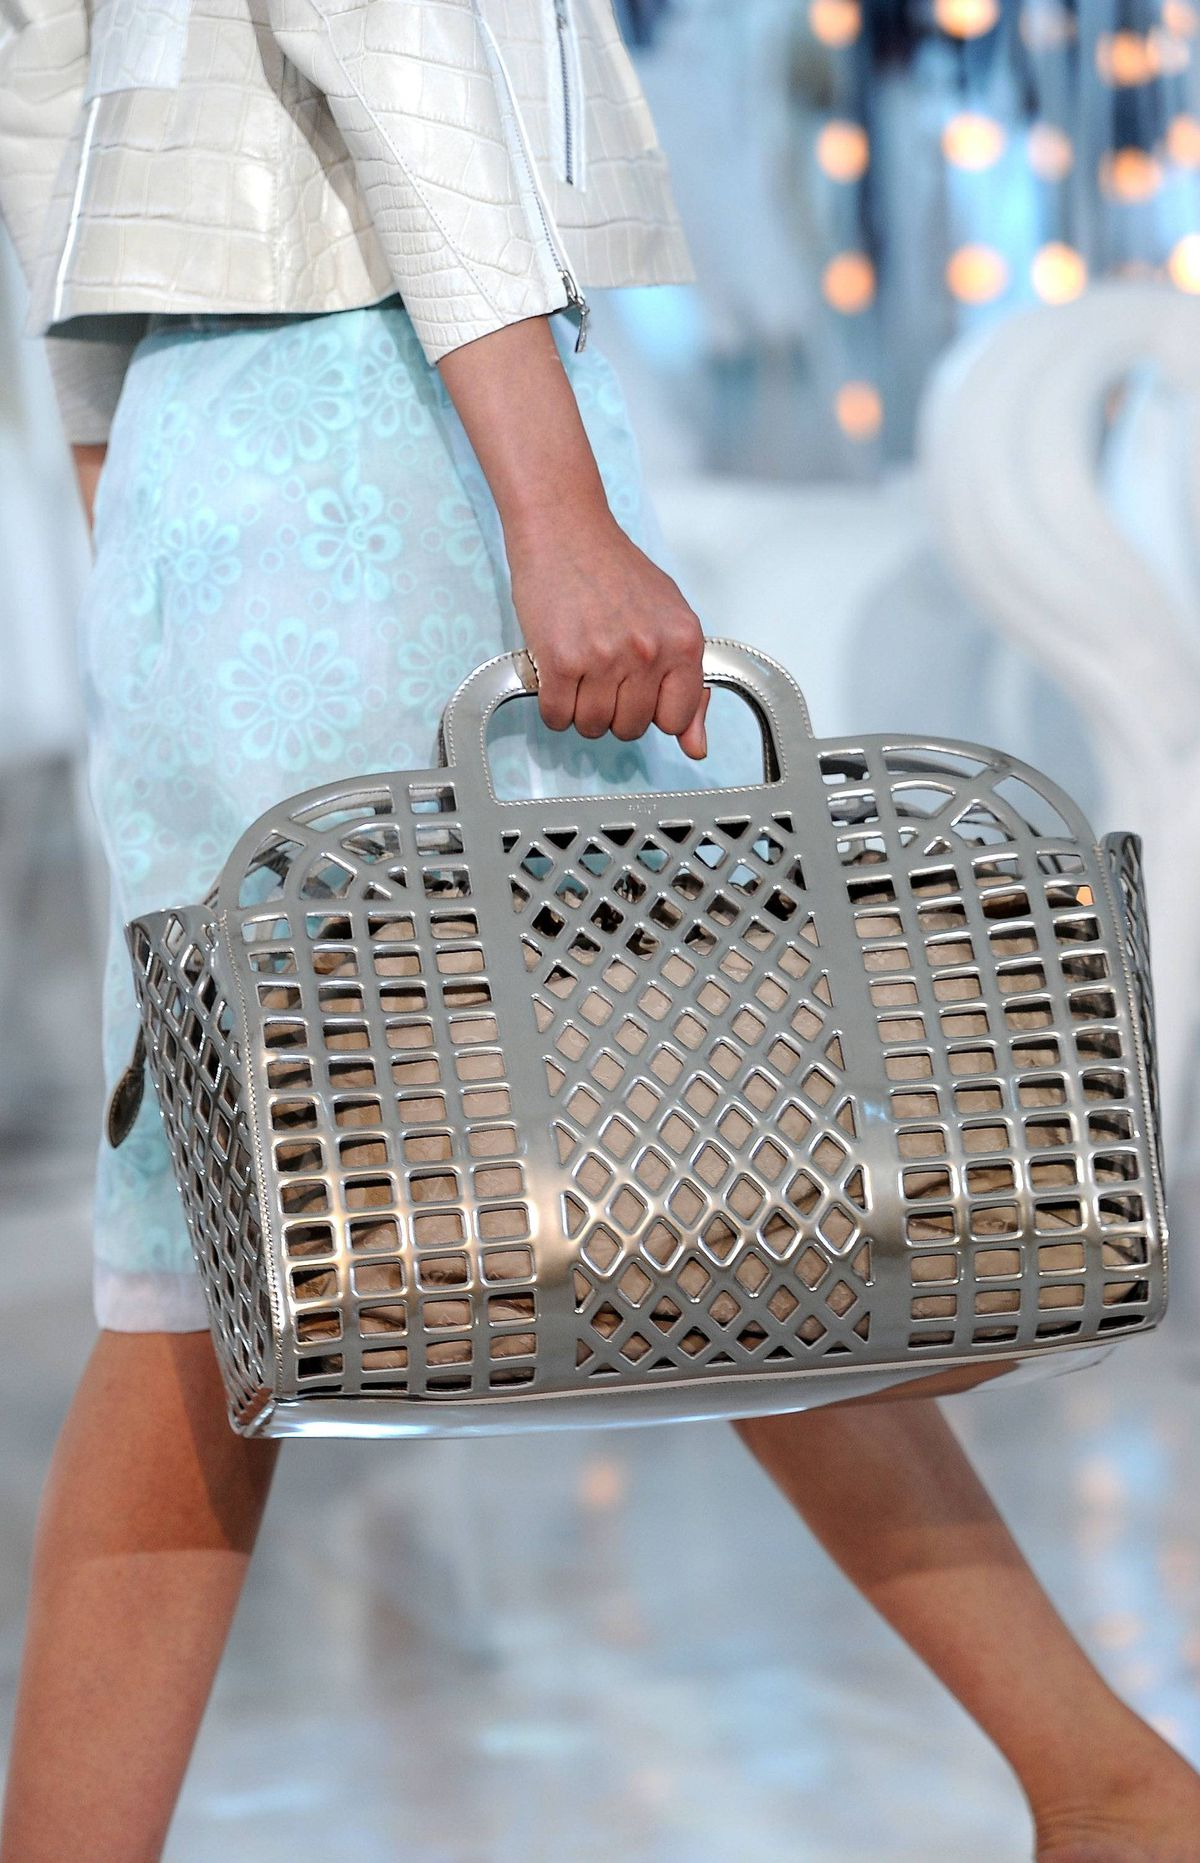 So were the bags second fiddle? Hardly, especially this basket-weave style in mirrored leather.